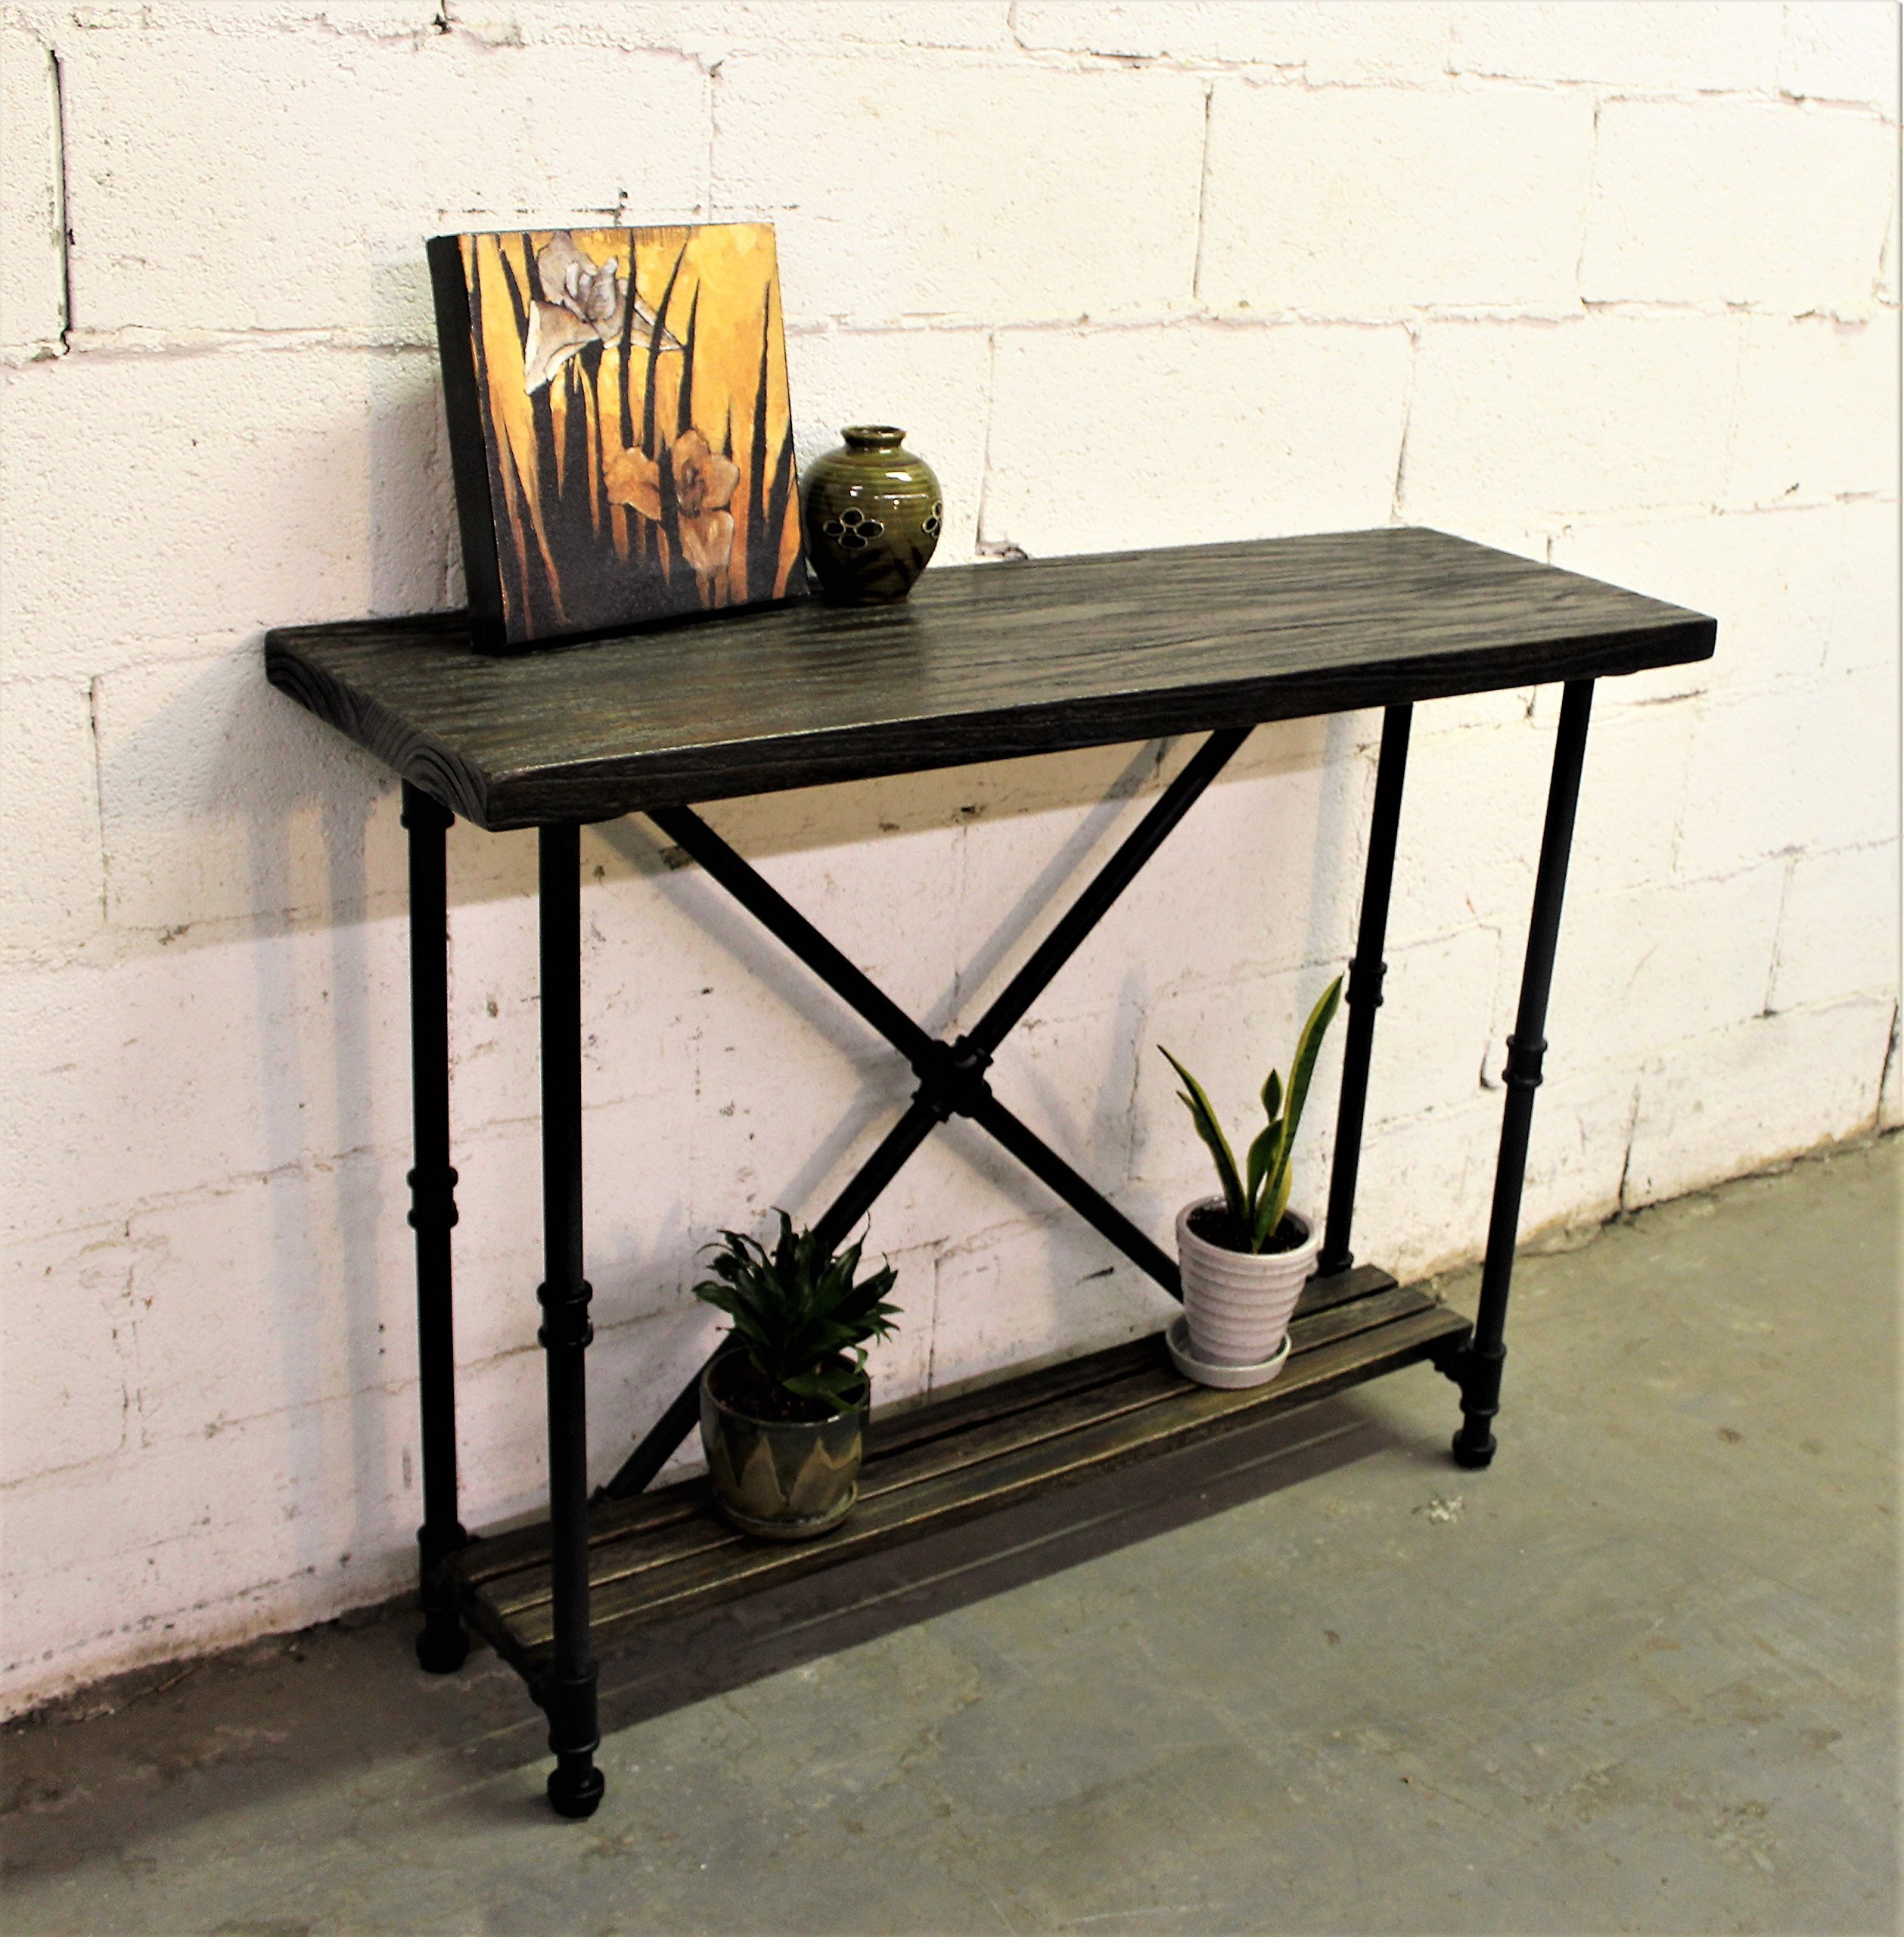 Furniture Pipeline Industrial, 2-Tier Console-Sofa Hall Table, Metal and Reclaimed Aged Wood Finish, Steel Pipes and Fittings with Stained Wood, Black/Dark Brown